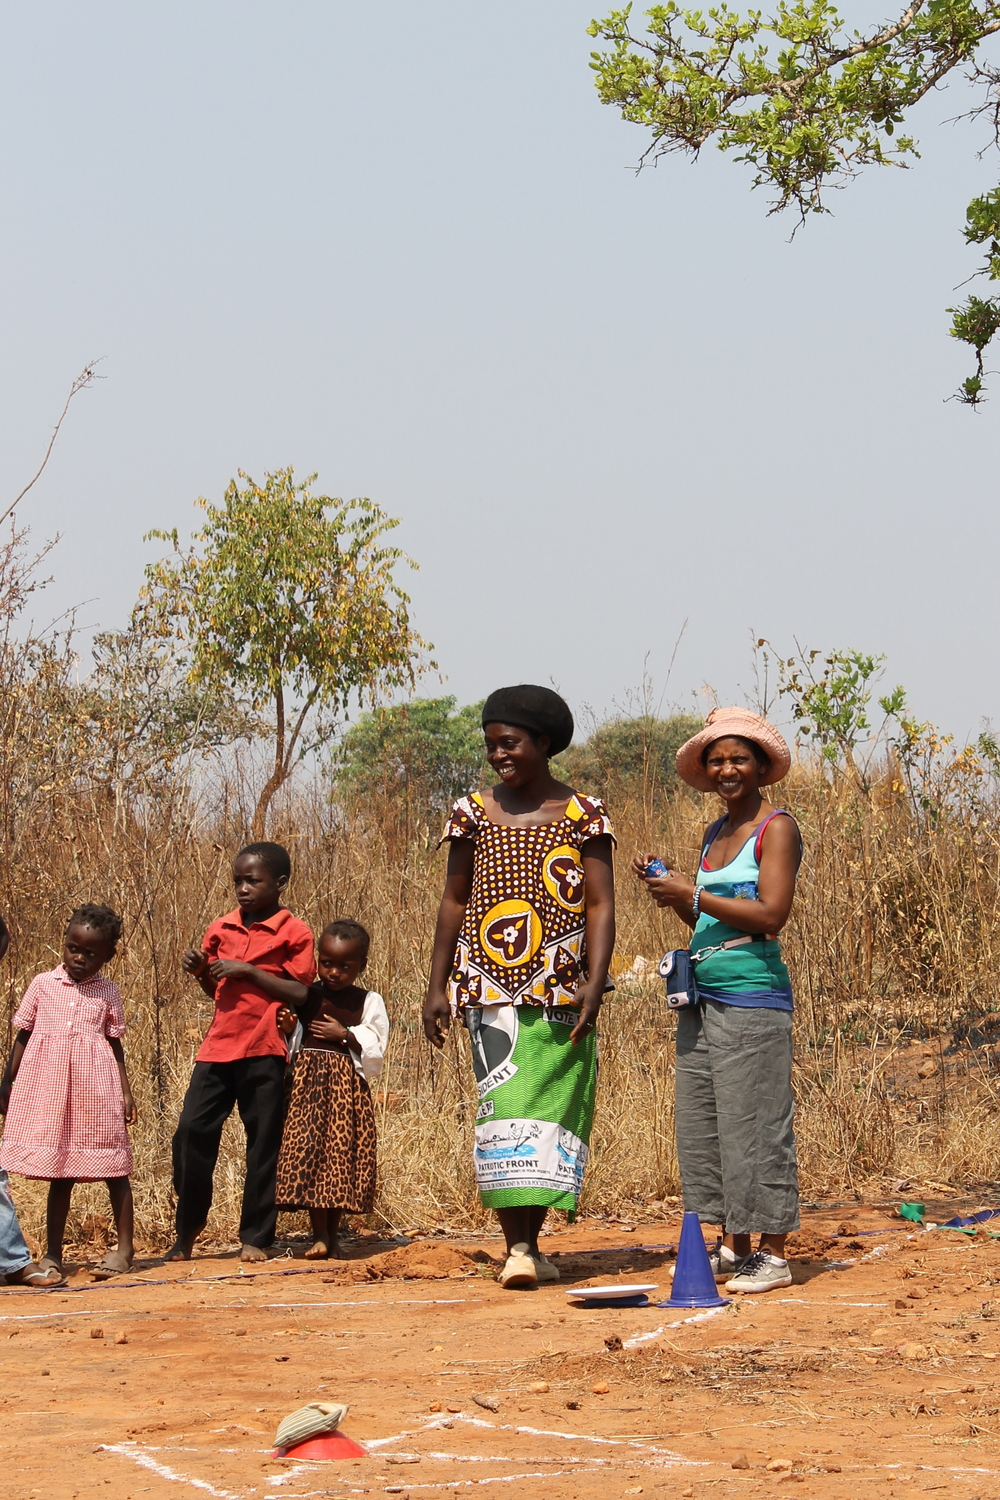 Elina (right) leading games for the children of Muchochoma Village during a past trip